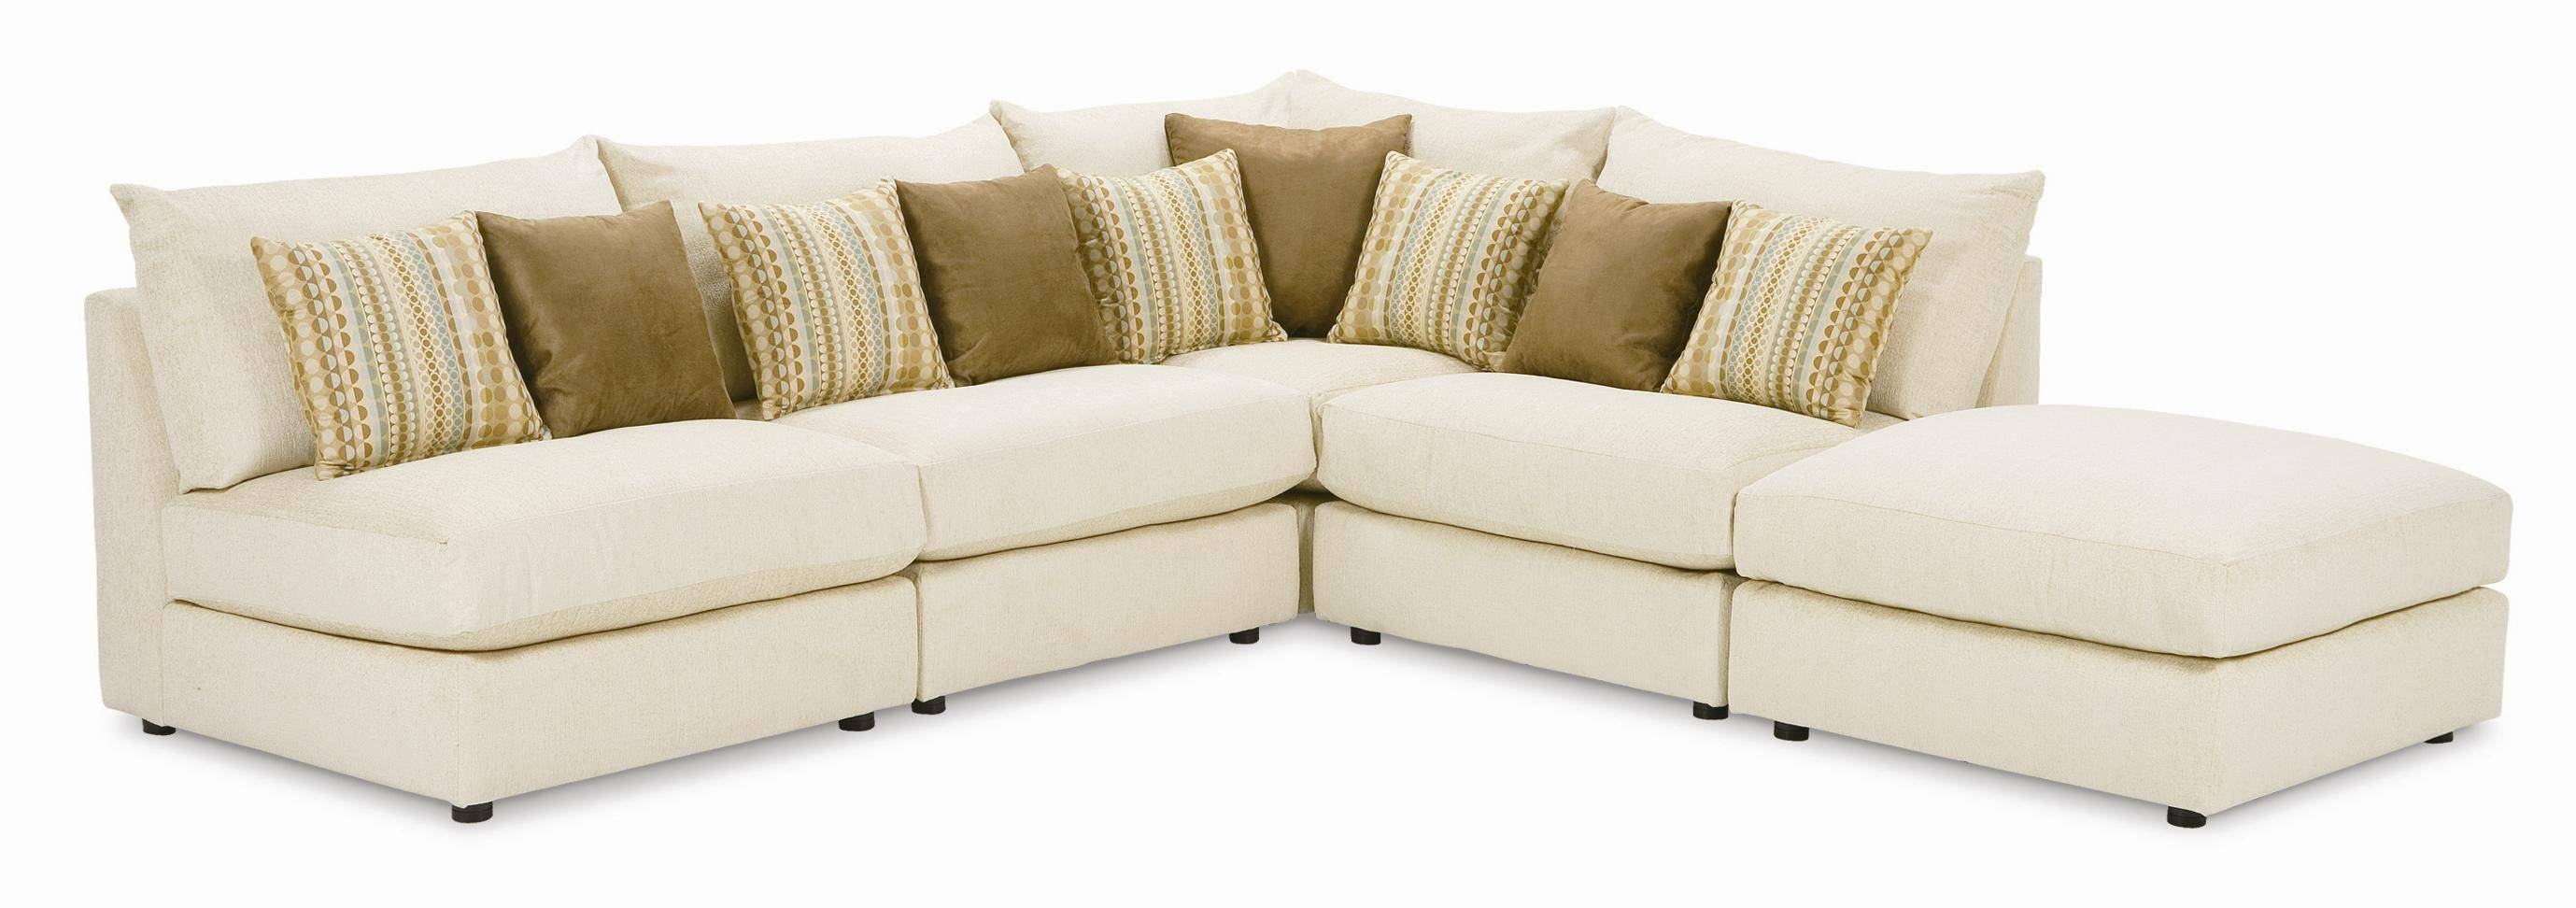 New lawson 2 chaise sectional sofa sectional sofas for Couch with 2 chaises